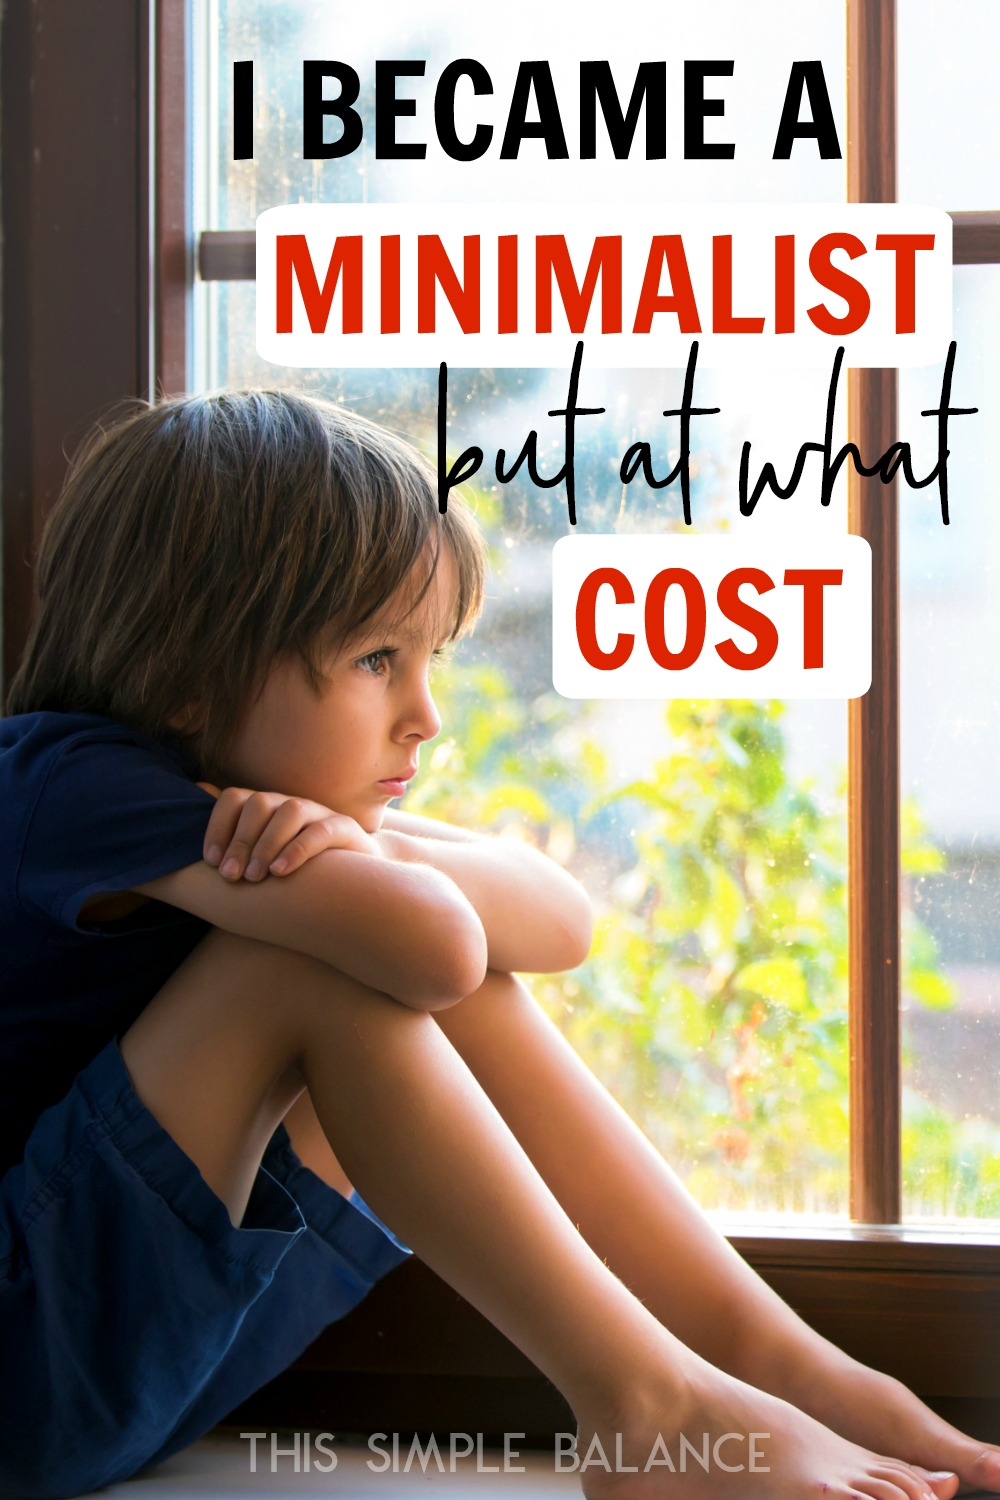 The Cost of Minimalism: We declutter like champions, but at what point does our focus on minimalism become hurtful to those around us?